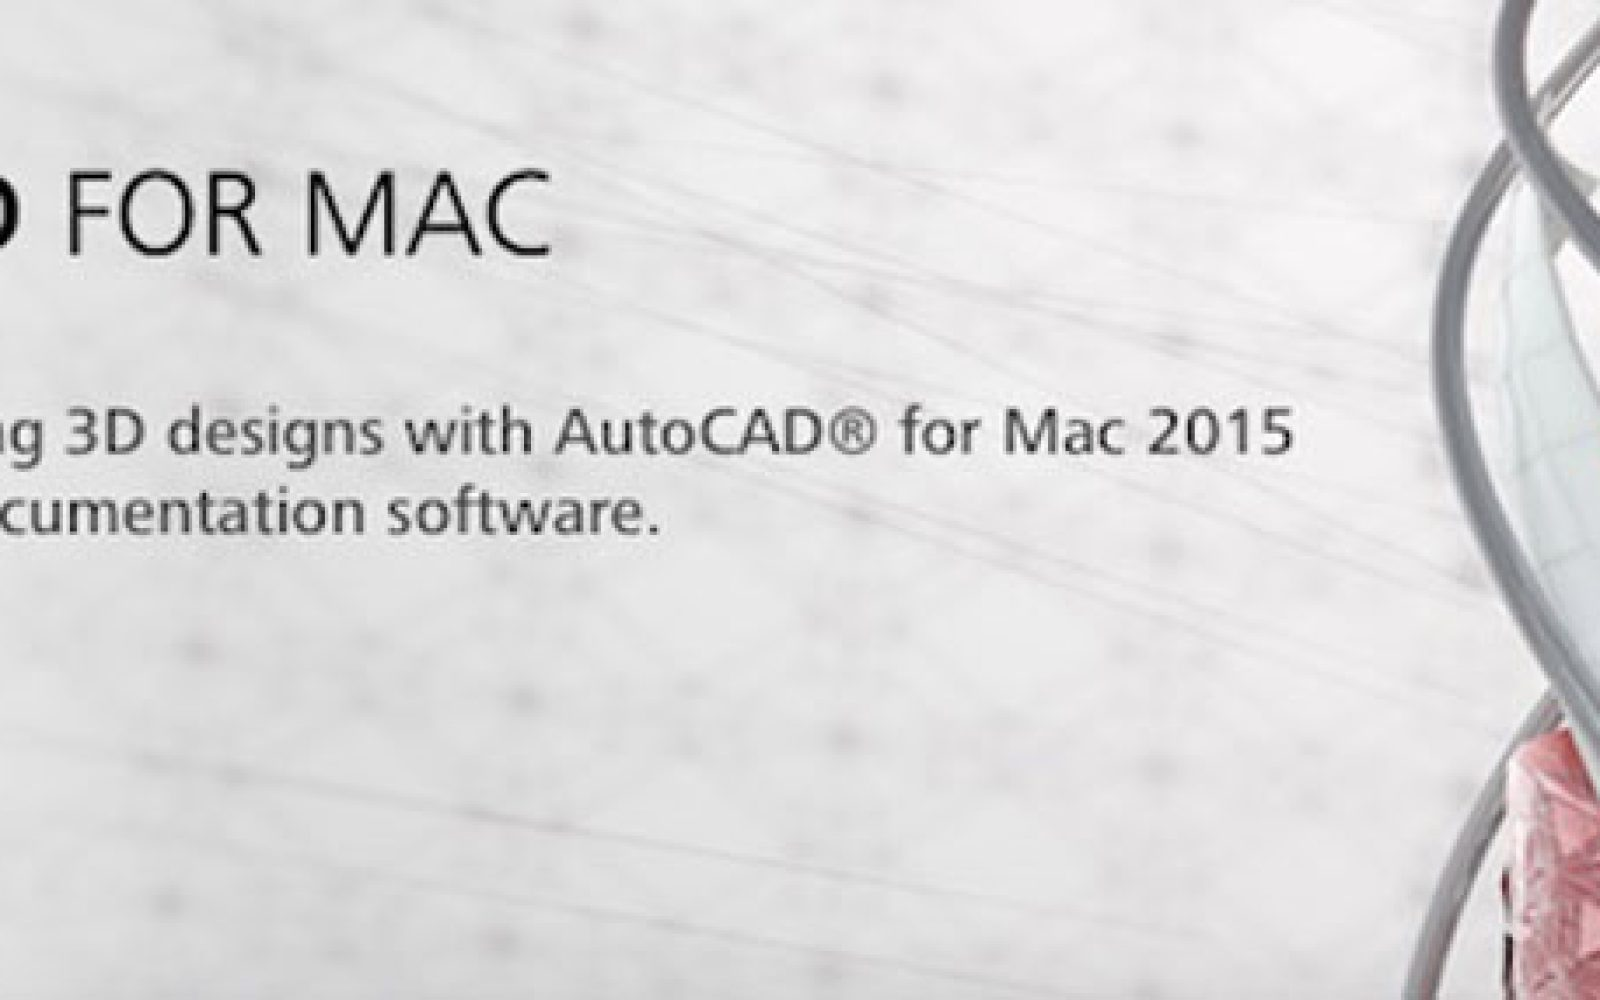 AutoCAD for Mac 2015 catches up with Windows feature-set